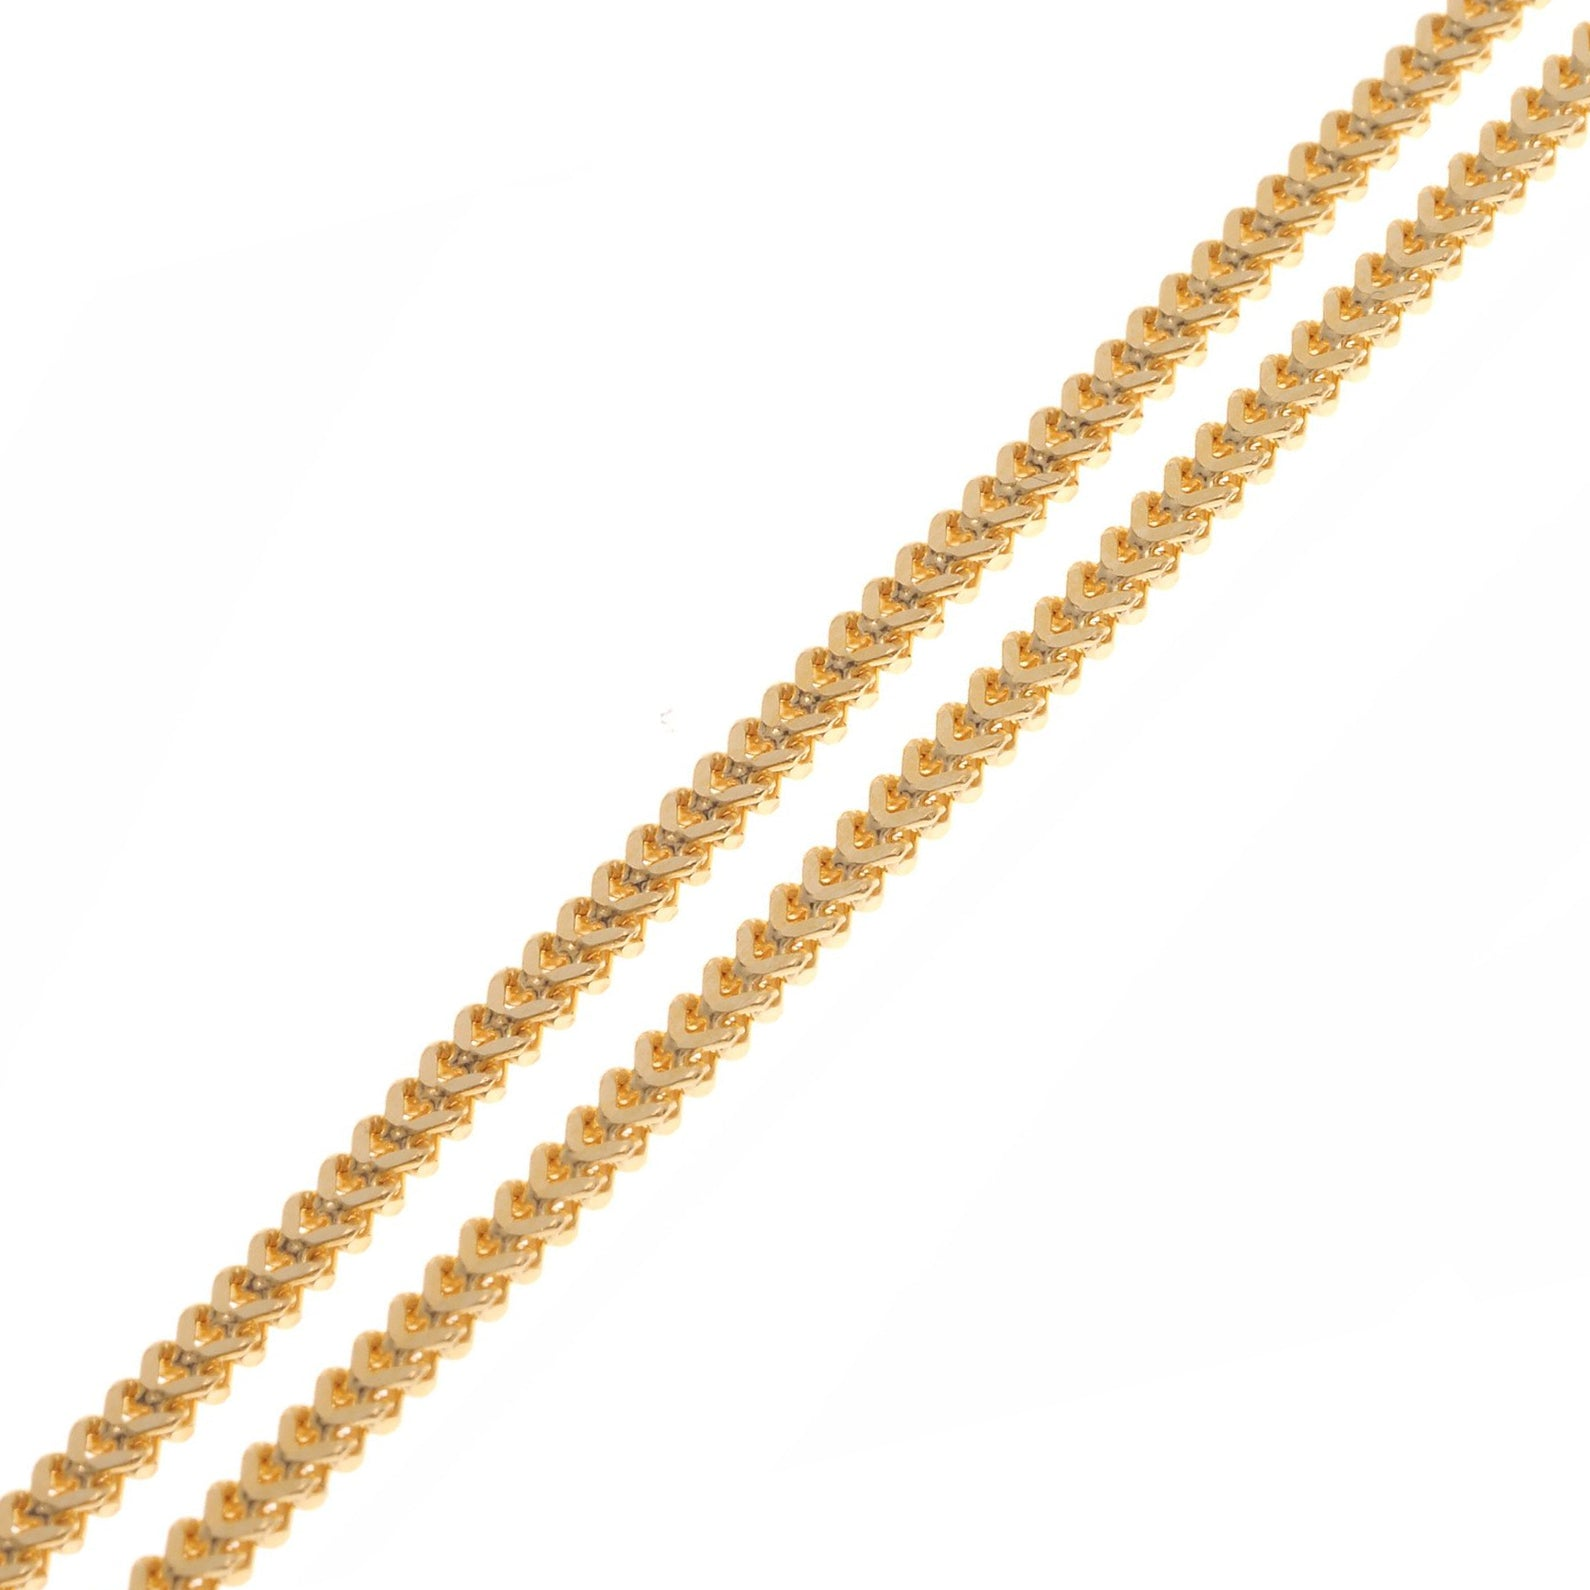 22ct Gold Unisex Foxtail Chain with a lobster clasp (C-3796)